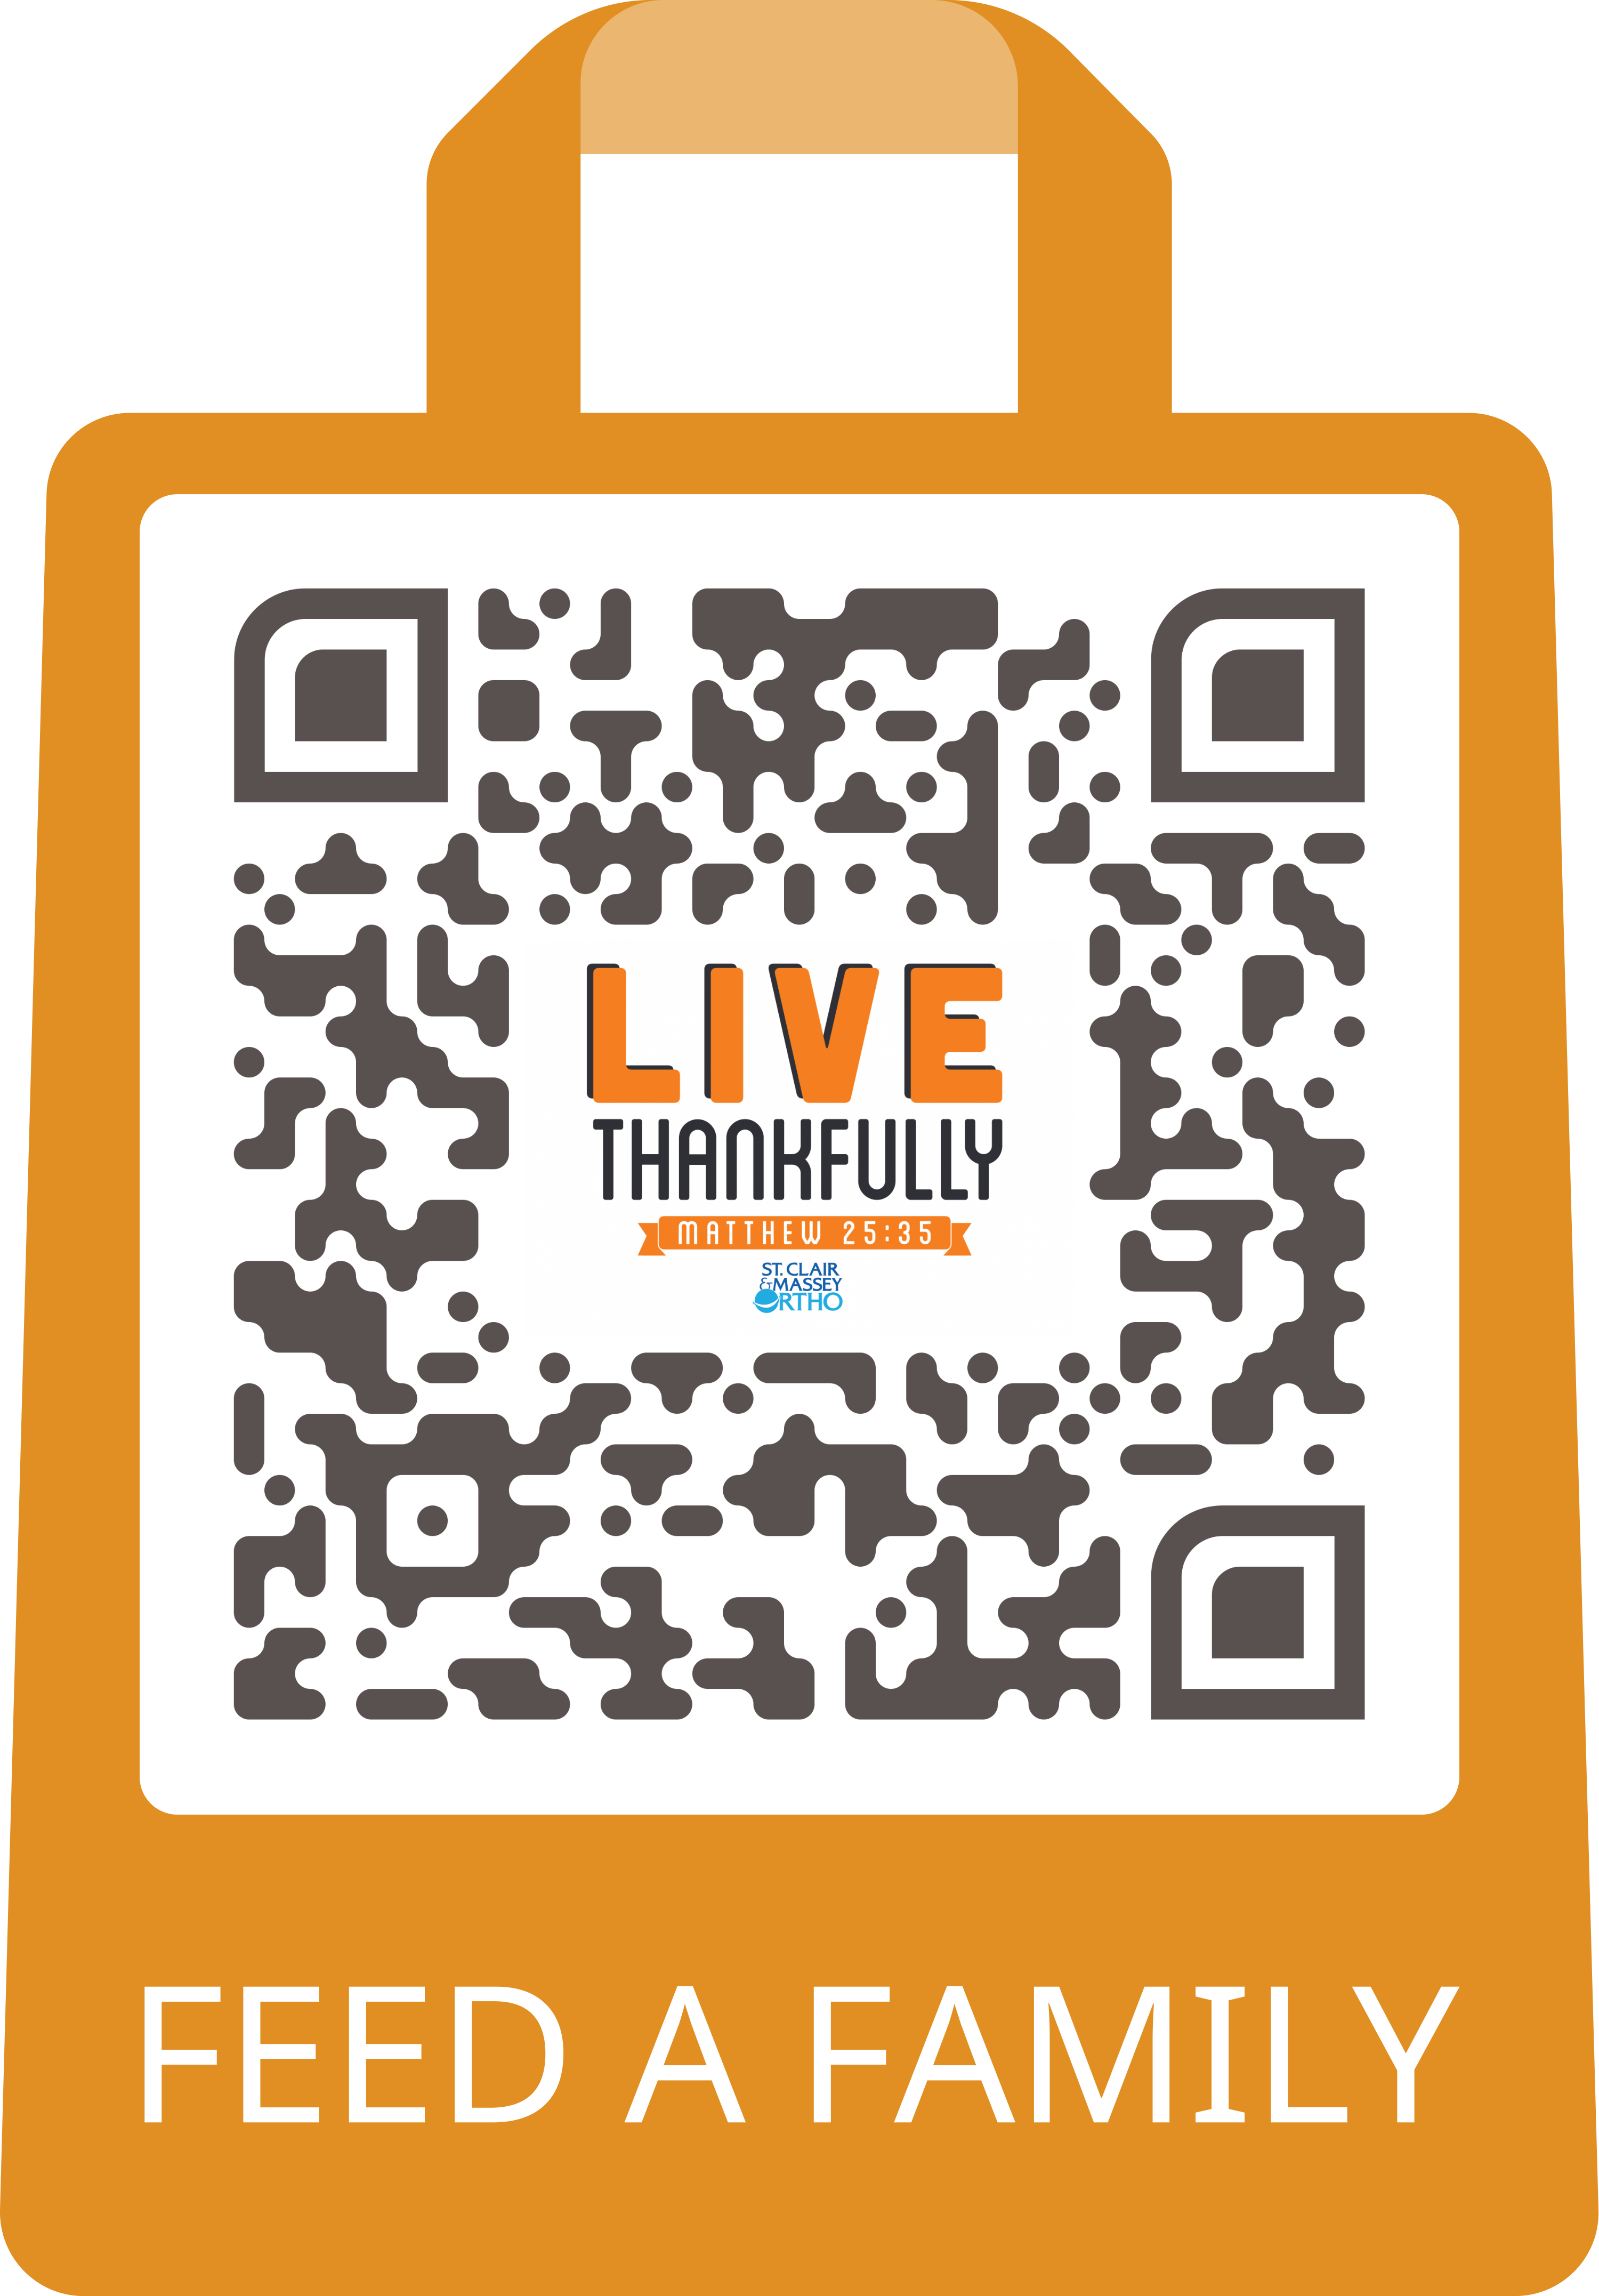 QR Code to use for donations